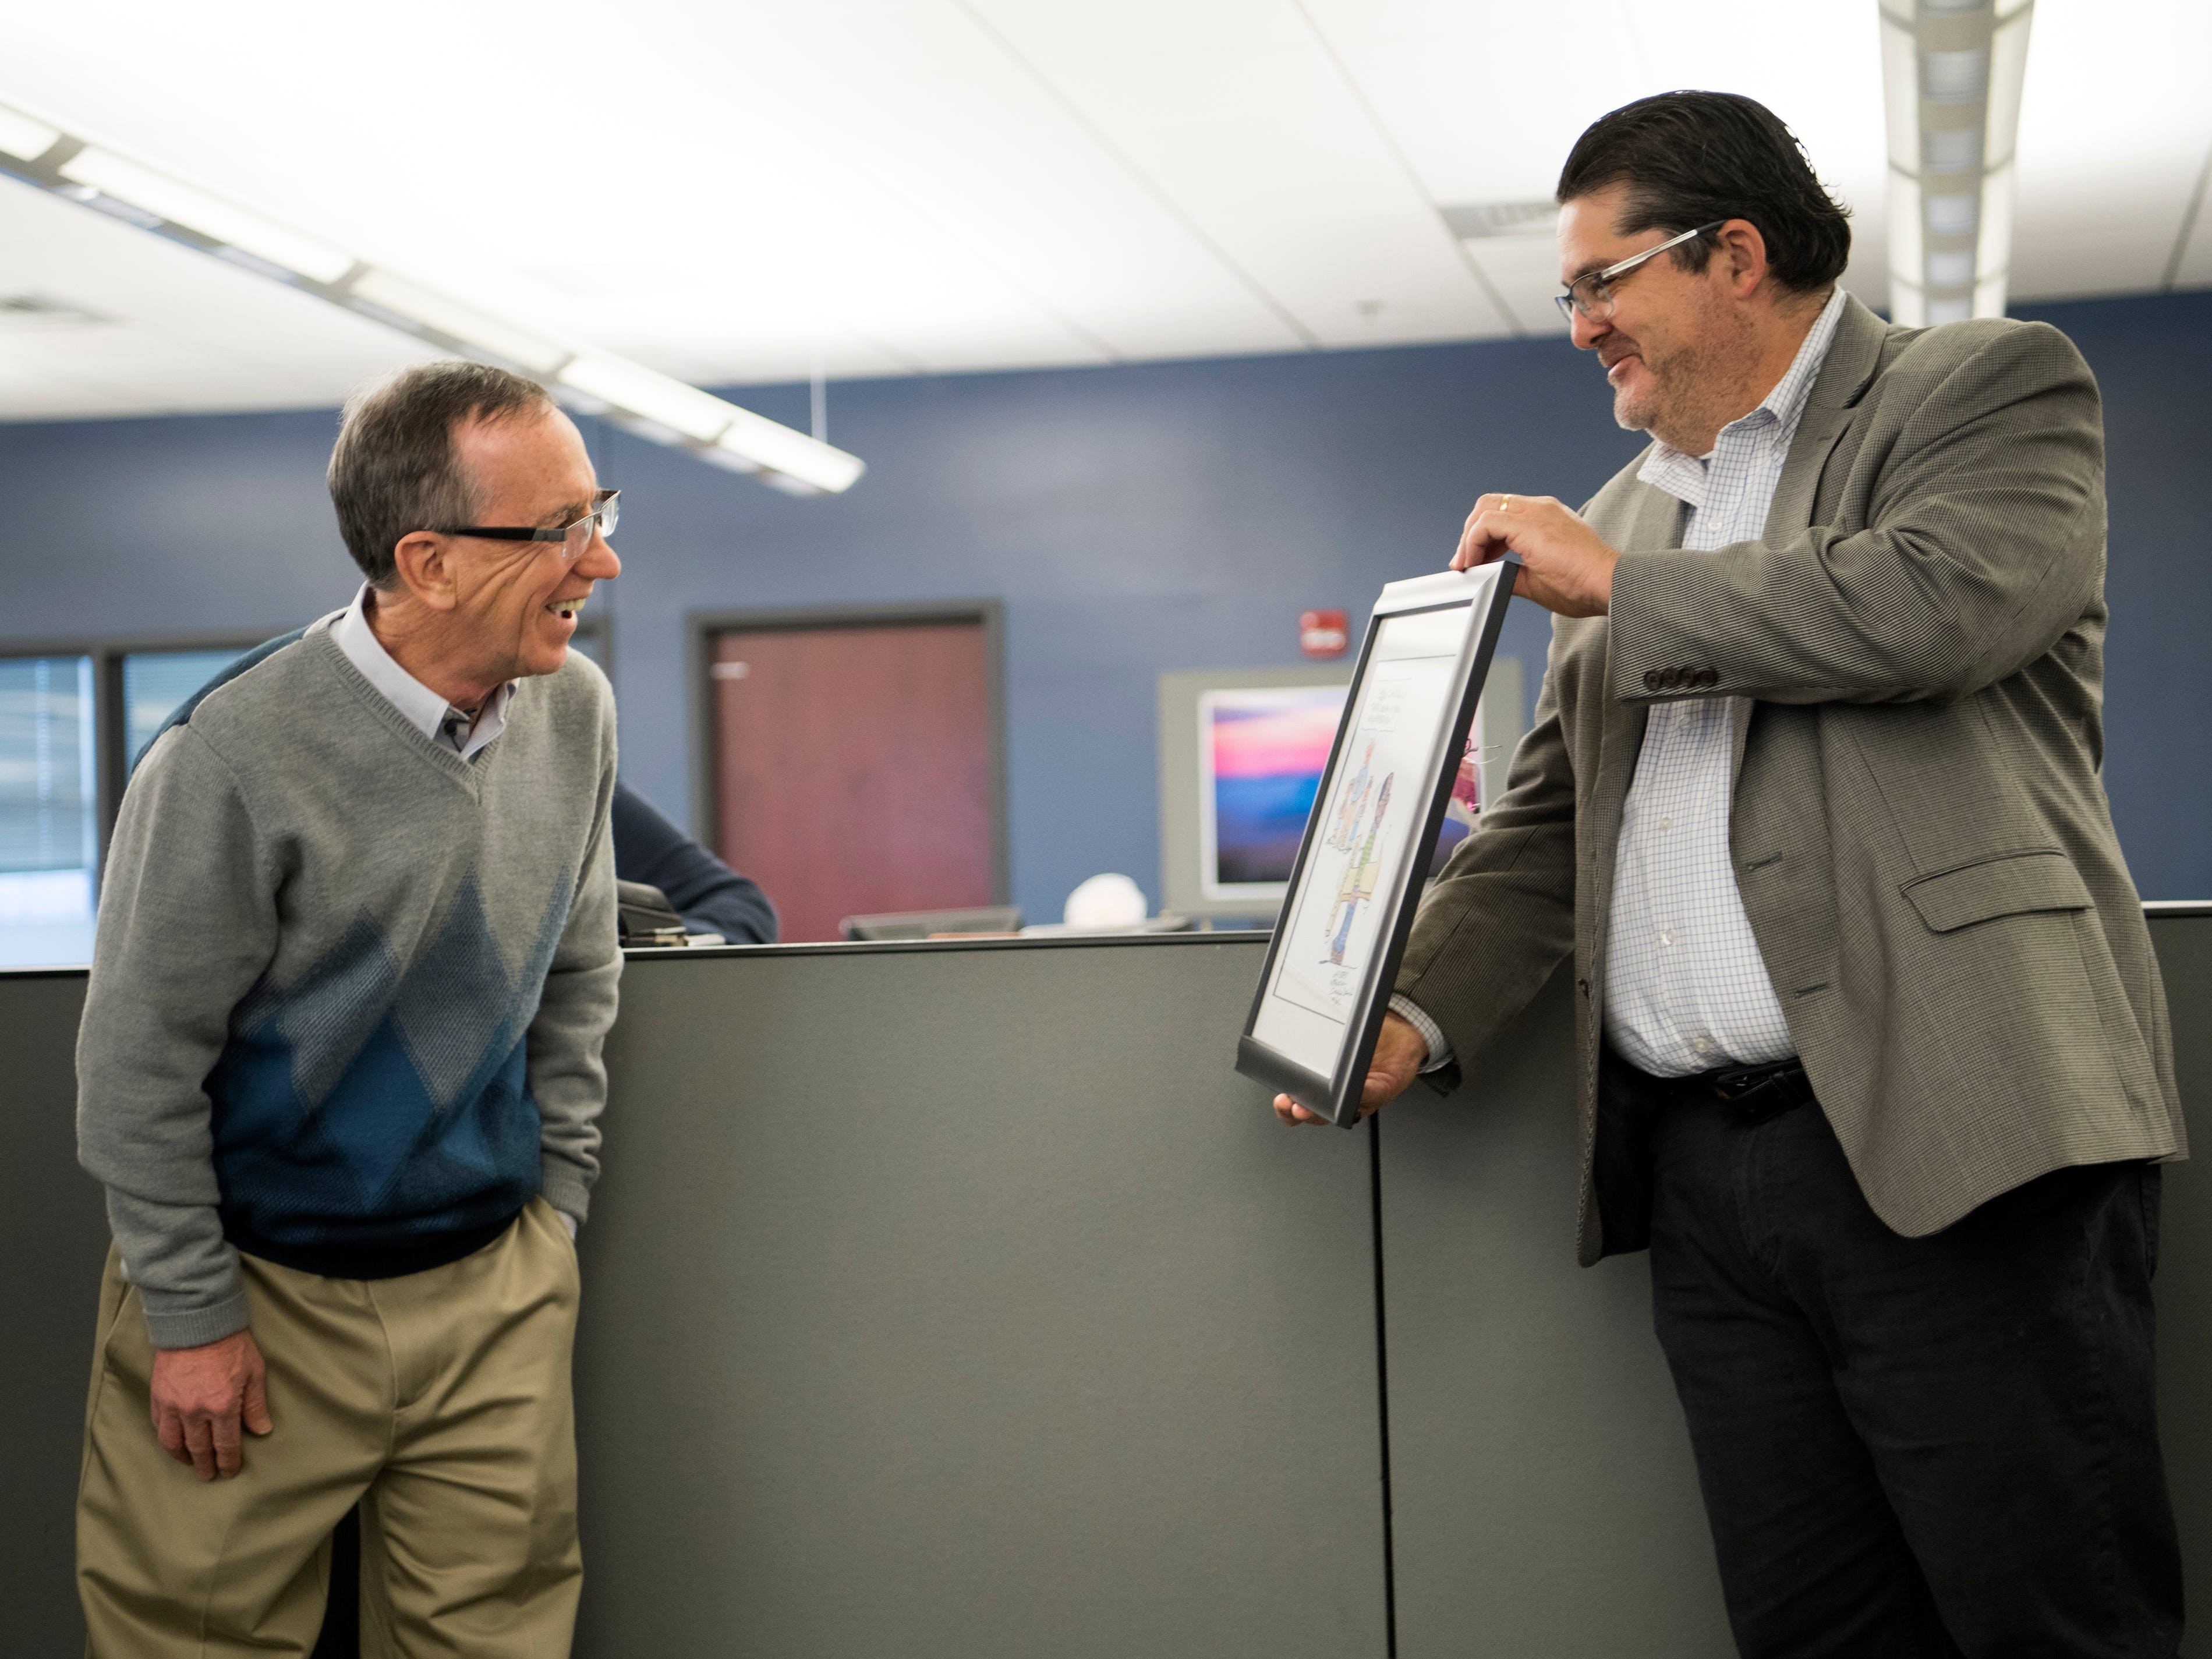 Michael Anastasi, Vice President/News for USA TODAY NETWORK Tennessee, shows executive editor Jack McElroy the custom Charlie Daniel cartoon made for McElroy during a celebration for the retirements of executive editor Jack McElroy and cartoonist Charlie Daniel in the News Sentinel newsroom on Friday, February 1, 2019.